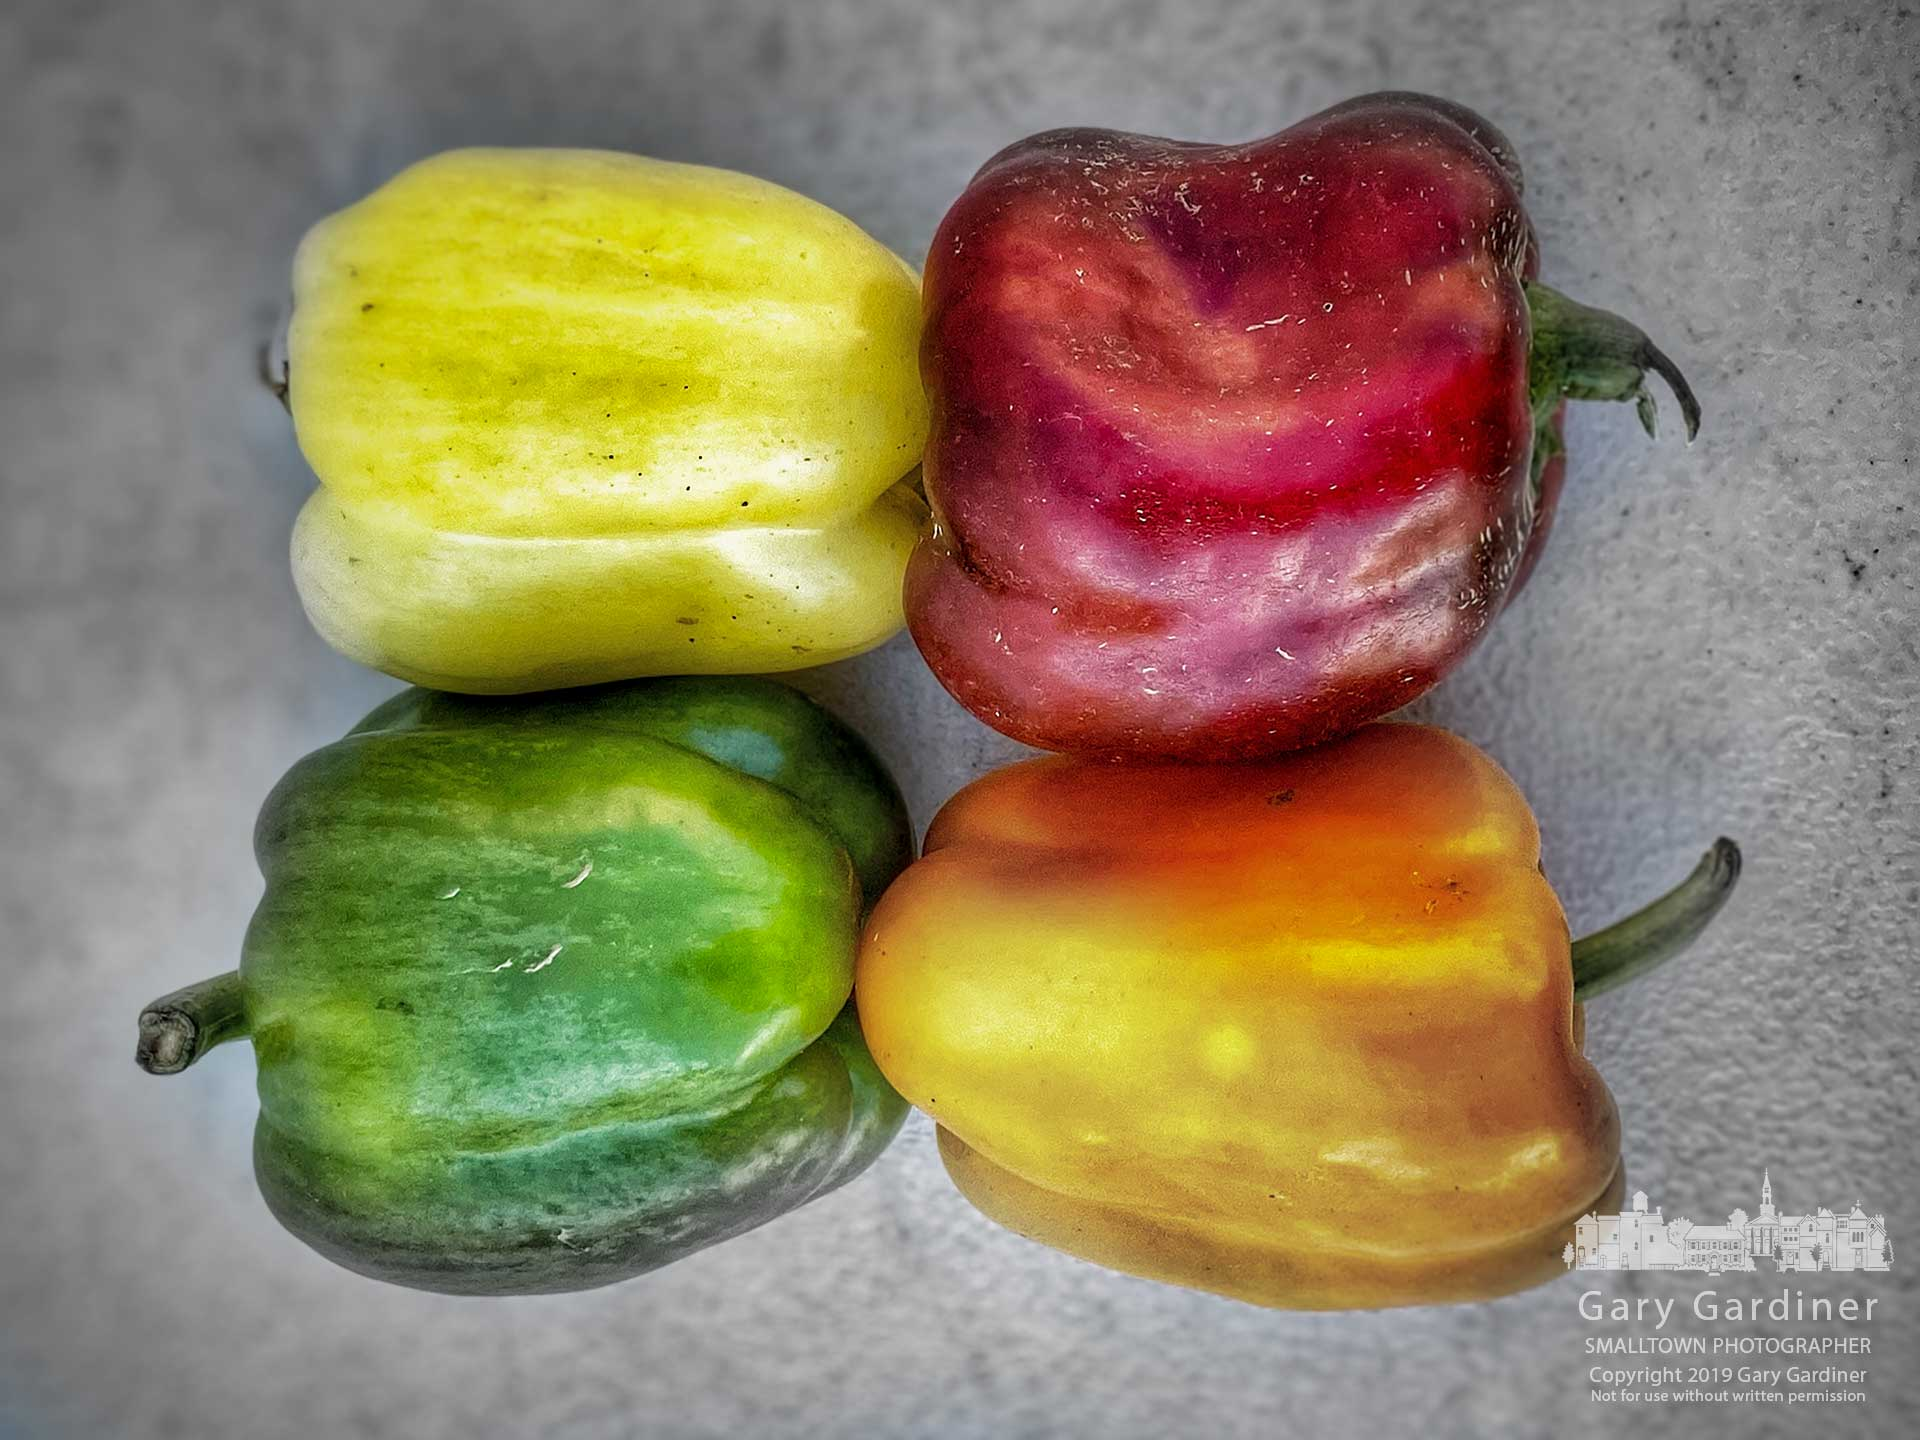 If Peter Piper picked a peck of pickled peppers this selection of peppers from the Wednesday Farmers market would surely be among the choices. My Final Photo for Sept. 25, 2019.